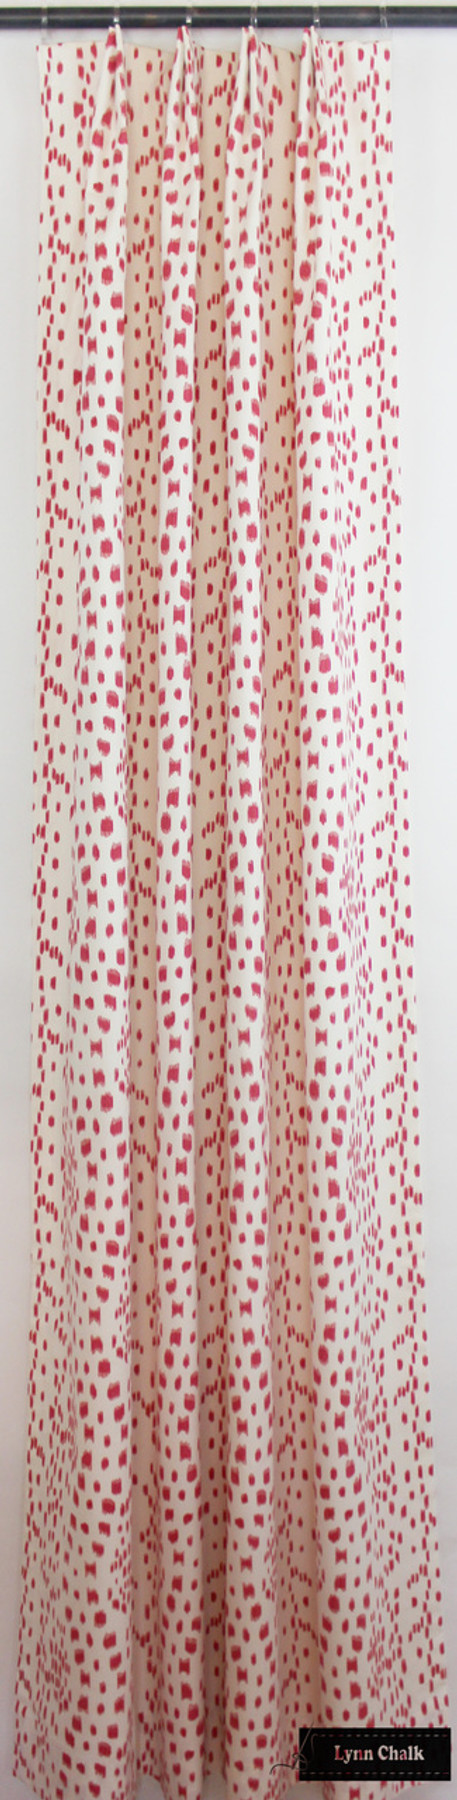 Custom Drapes in Les Touches in Pink